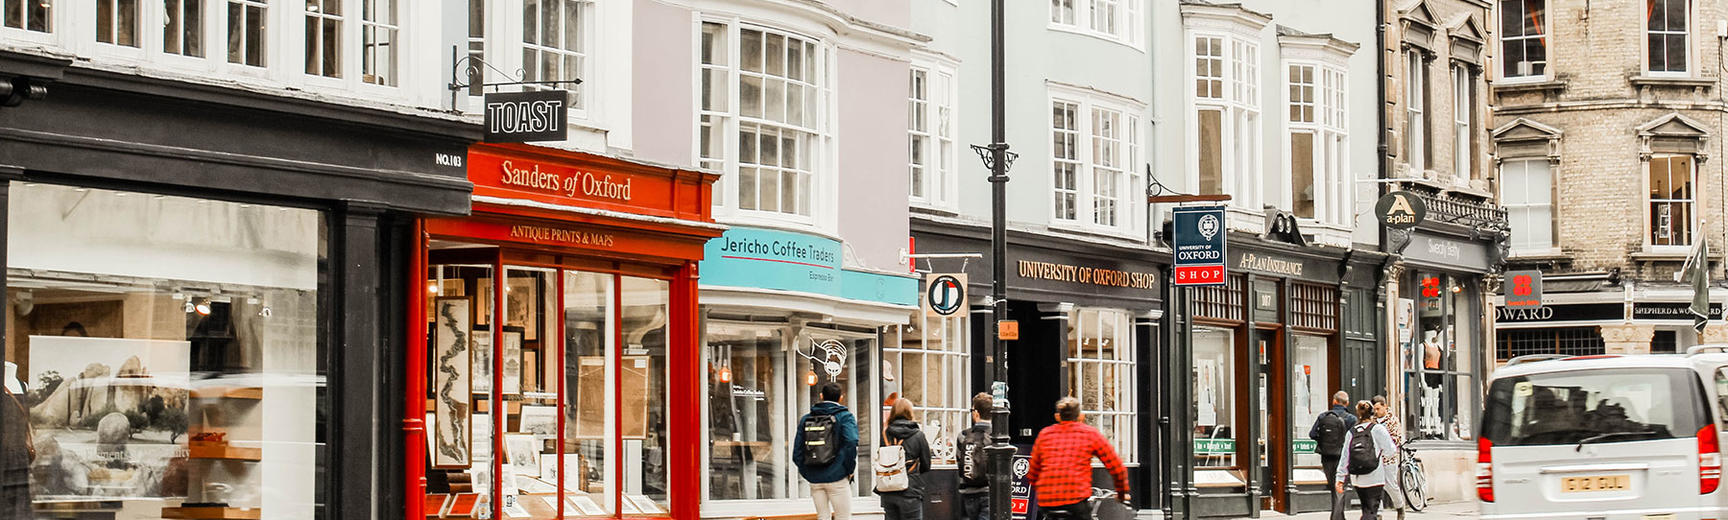 Image of Oxford city street including shops, cyclist, cars and pedestrians